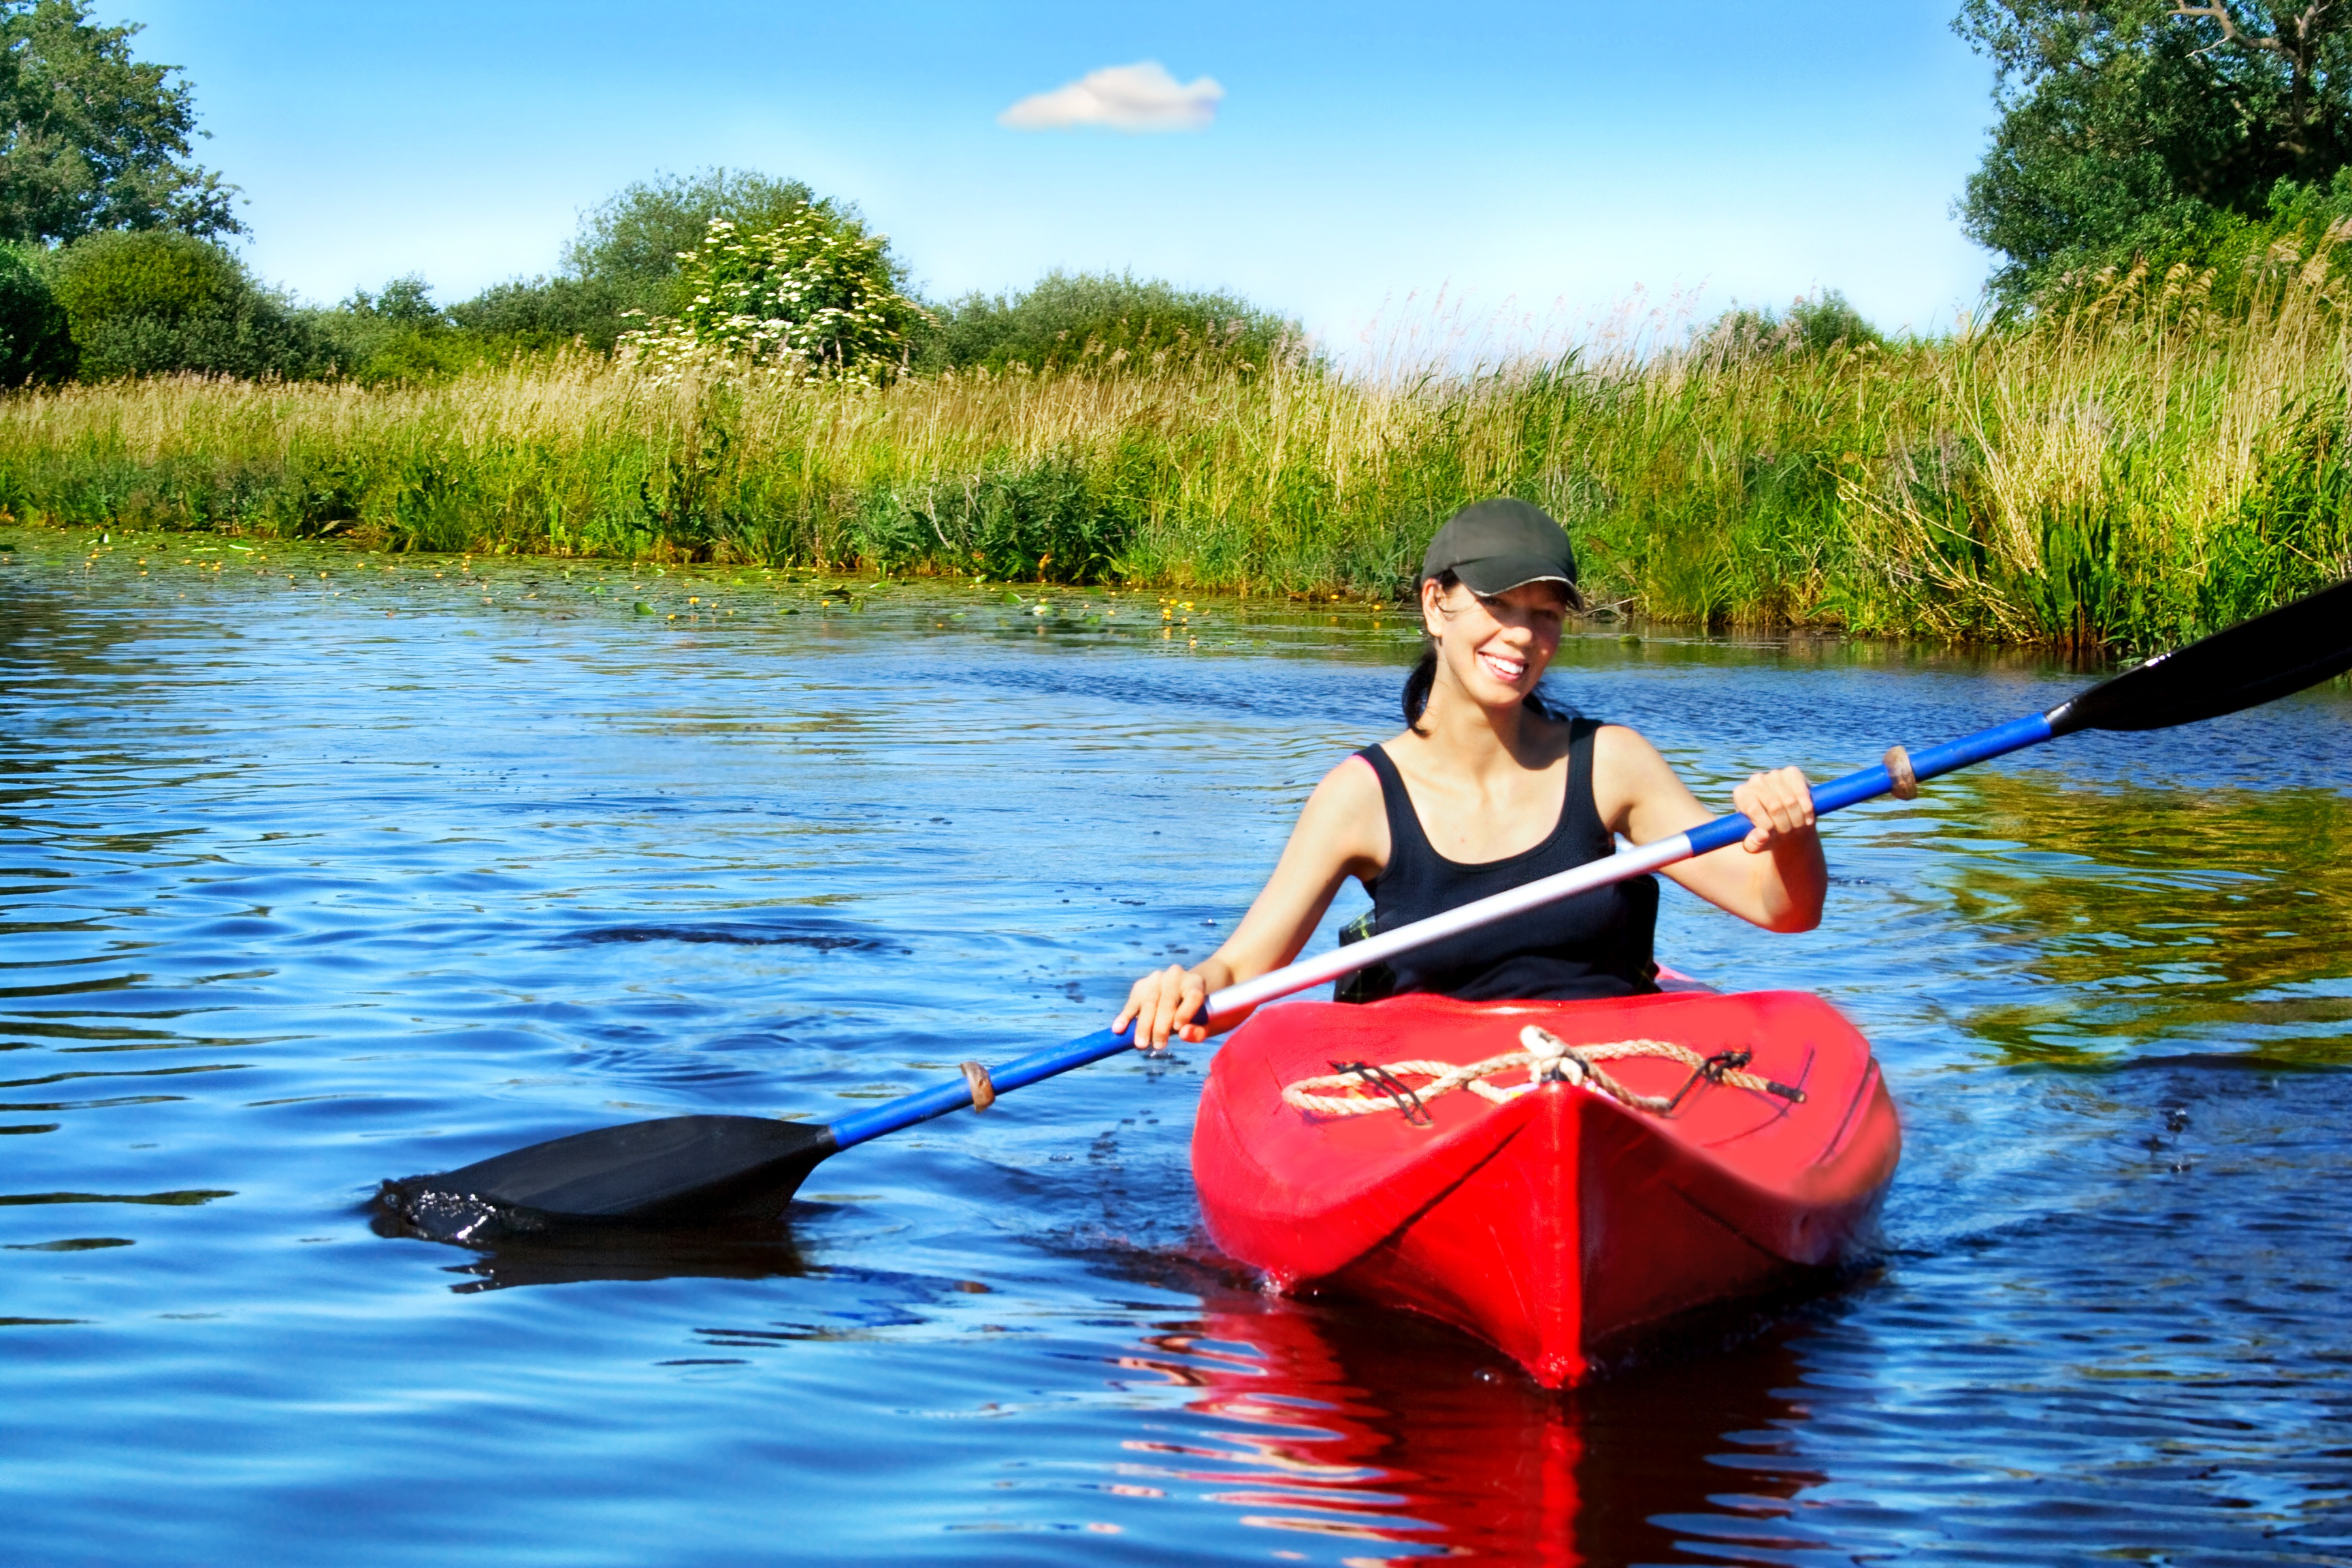 bigstock-Girl-with-paddle-and-kayak-on--35480015